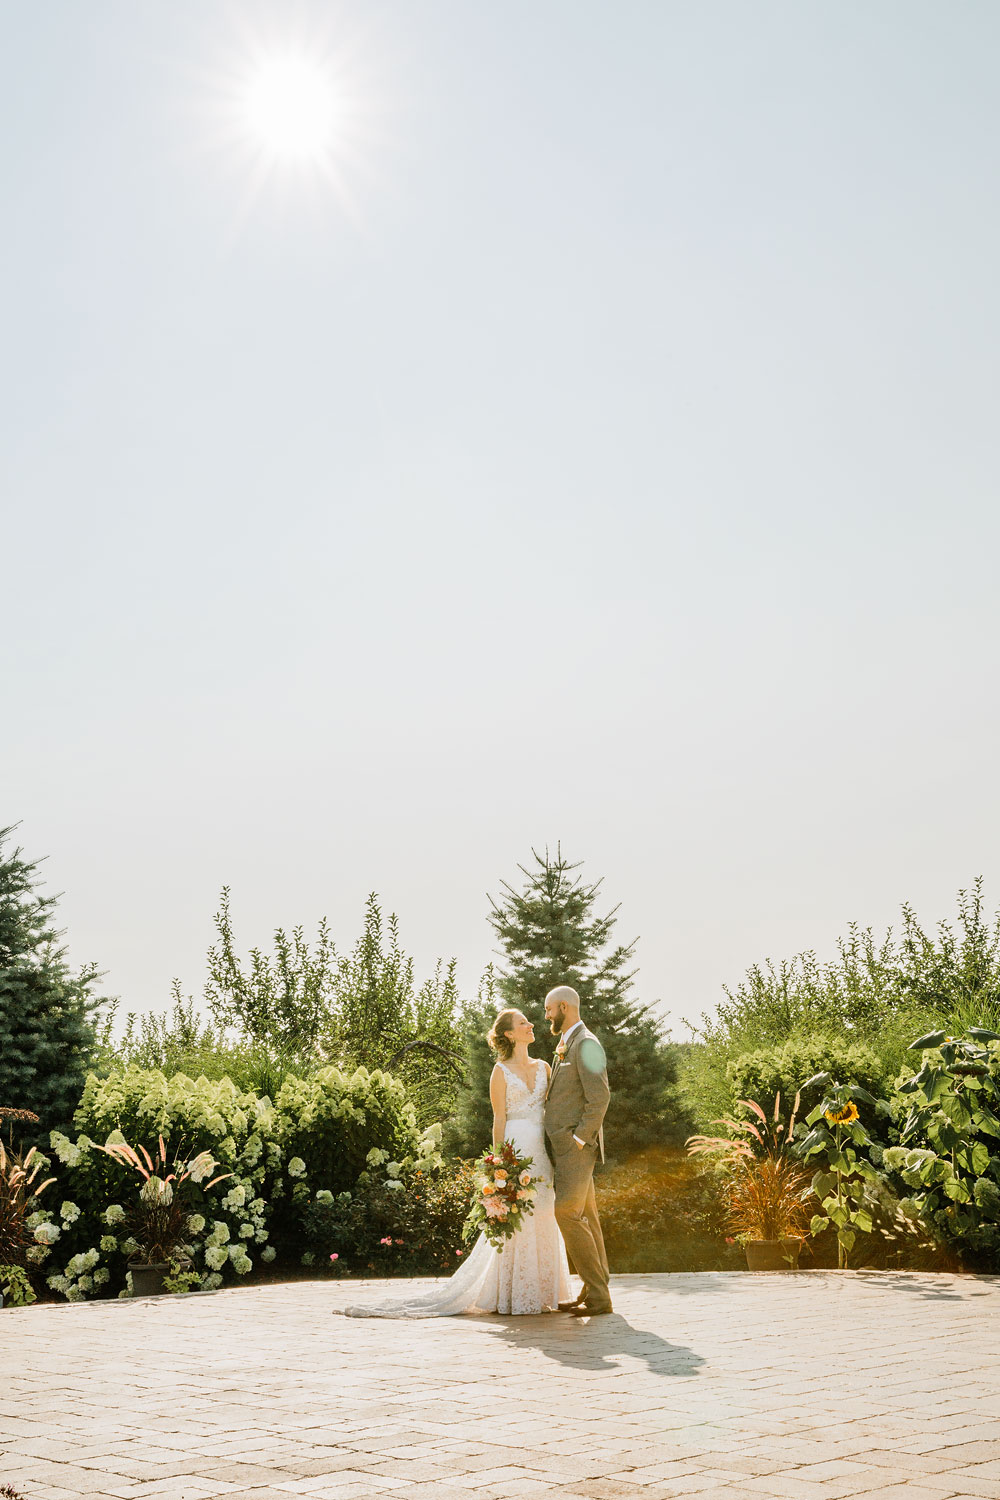 hillcrest-orchard-wedding-photography-outdoor-rustic-barn-cleveland-amherst-oberlin-ohio-wedding-photographers-111.jpg